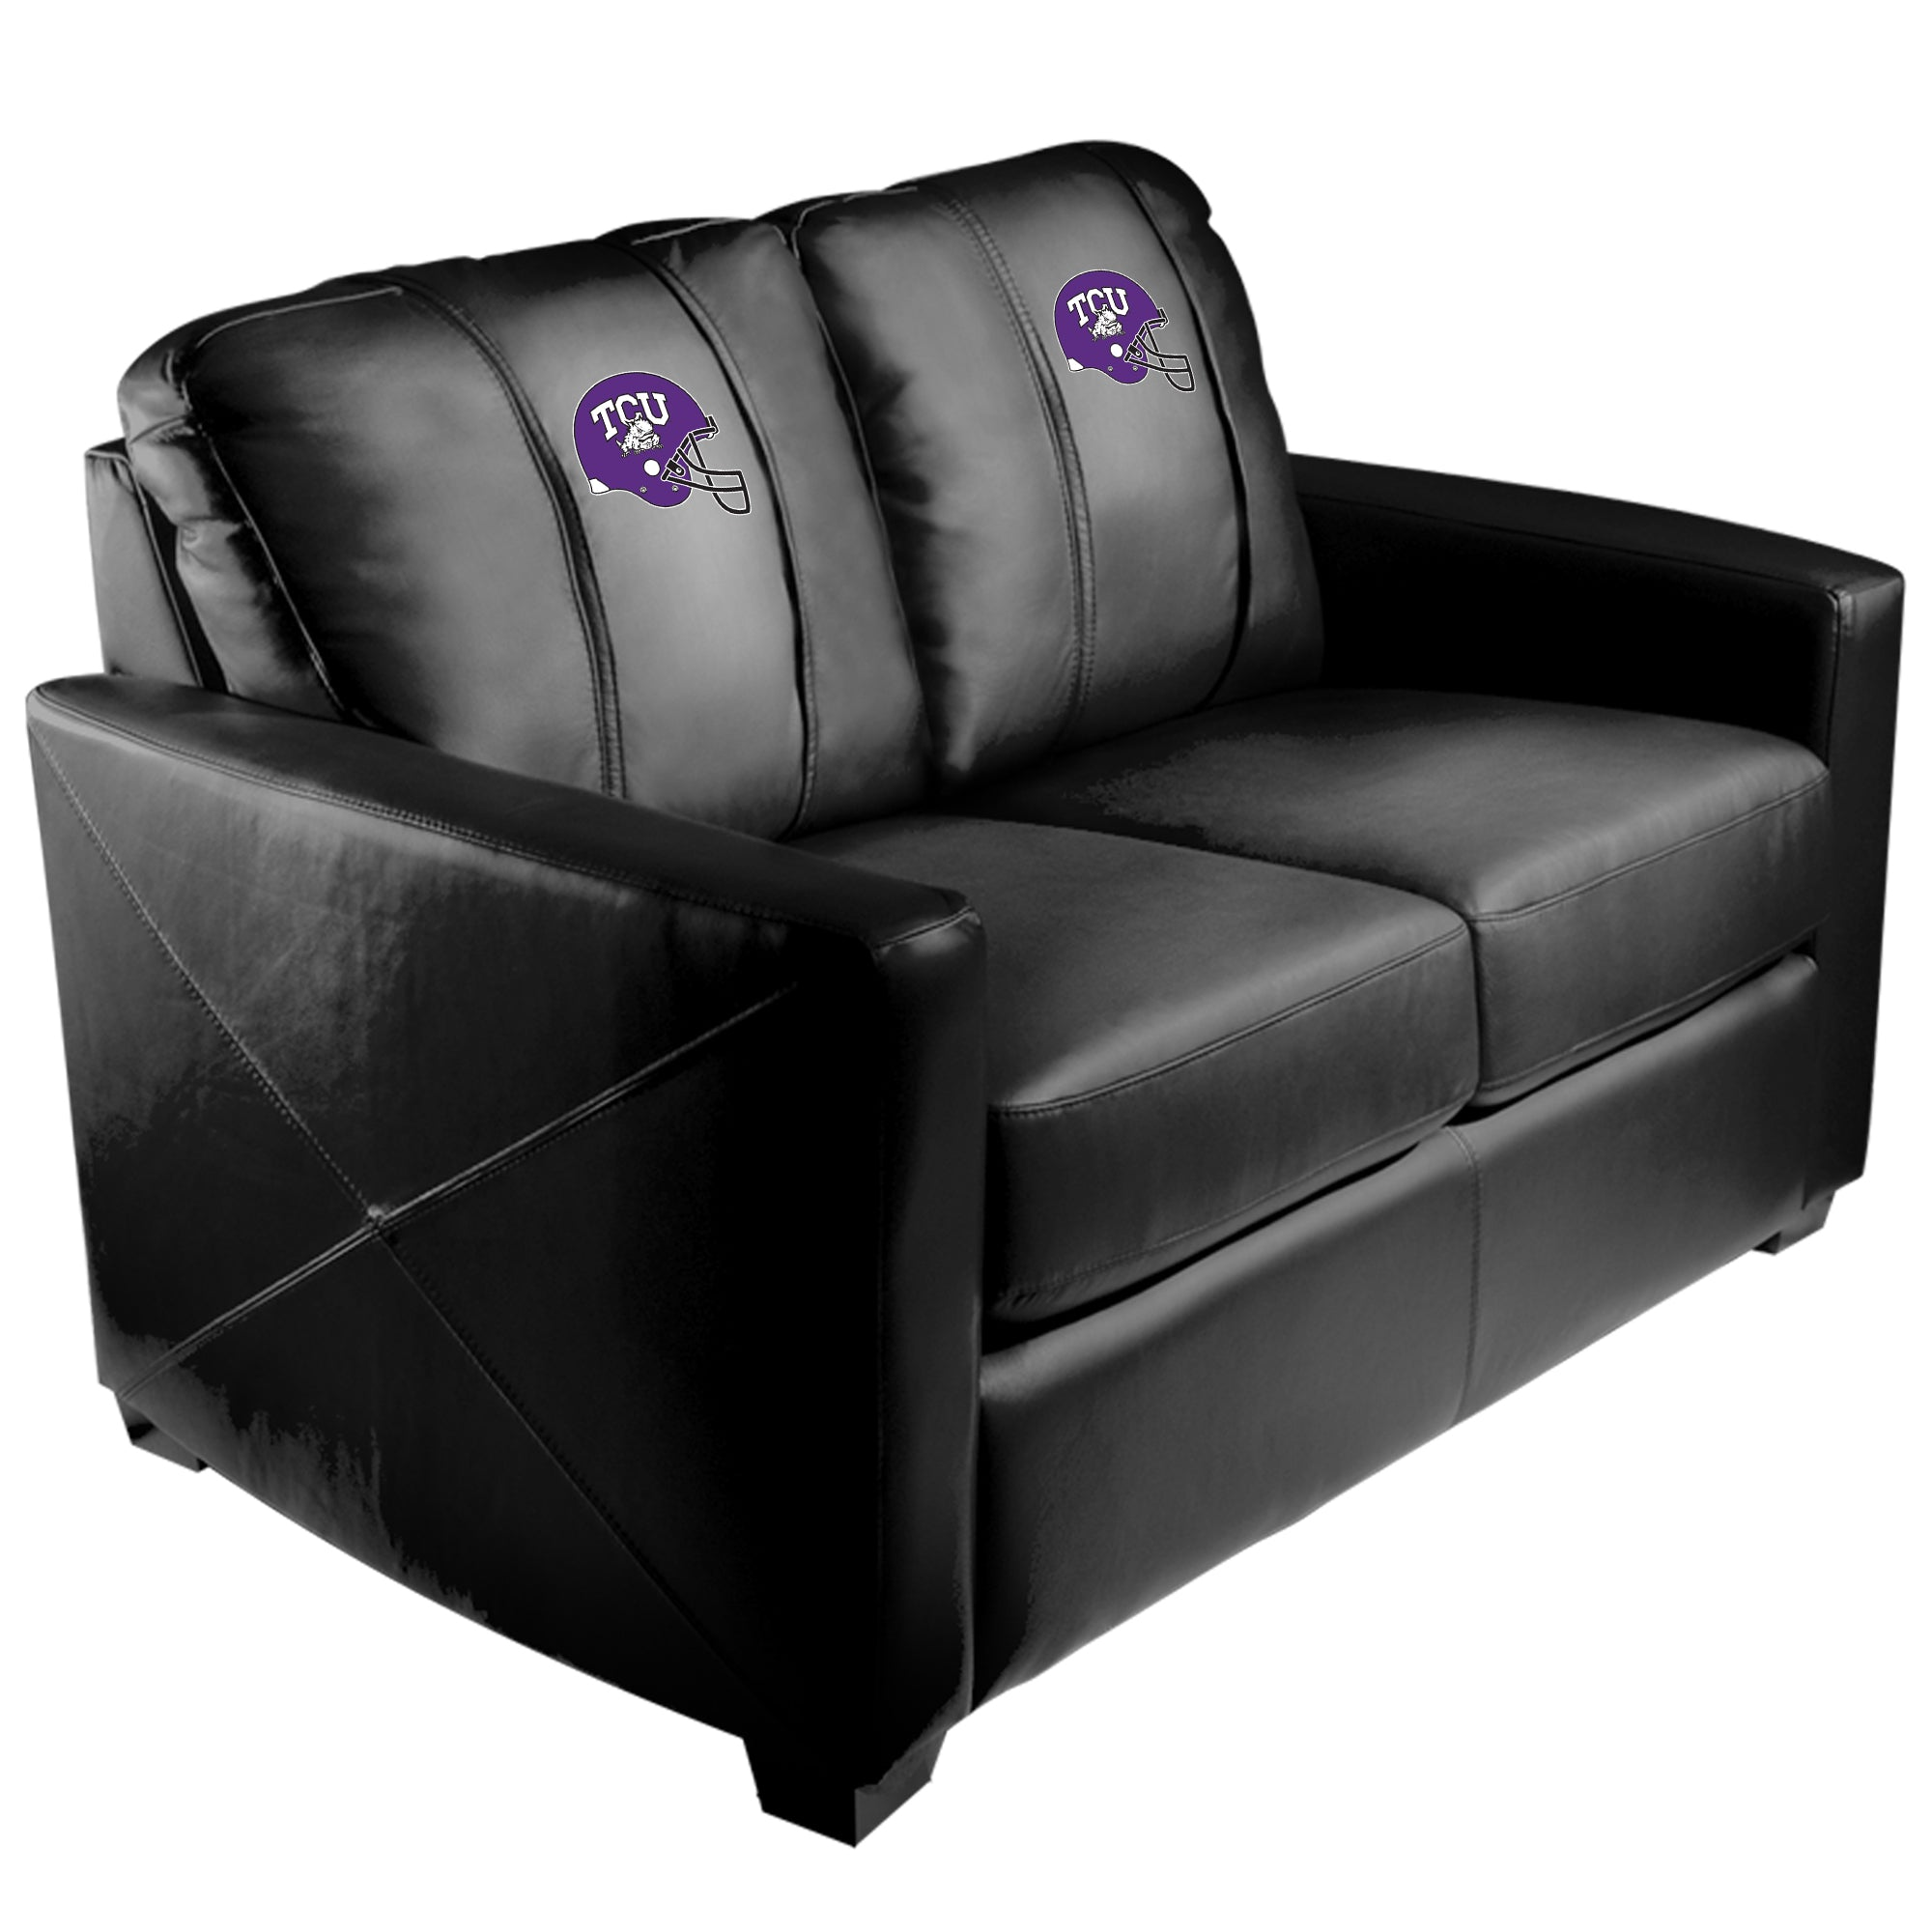 Silver Loveseat with TCU Horned Frogs Alternate